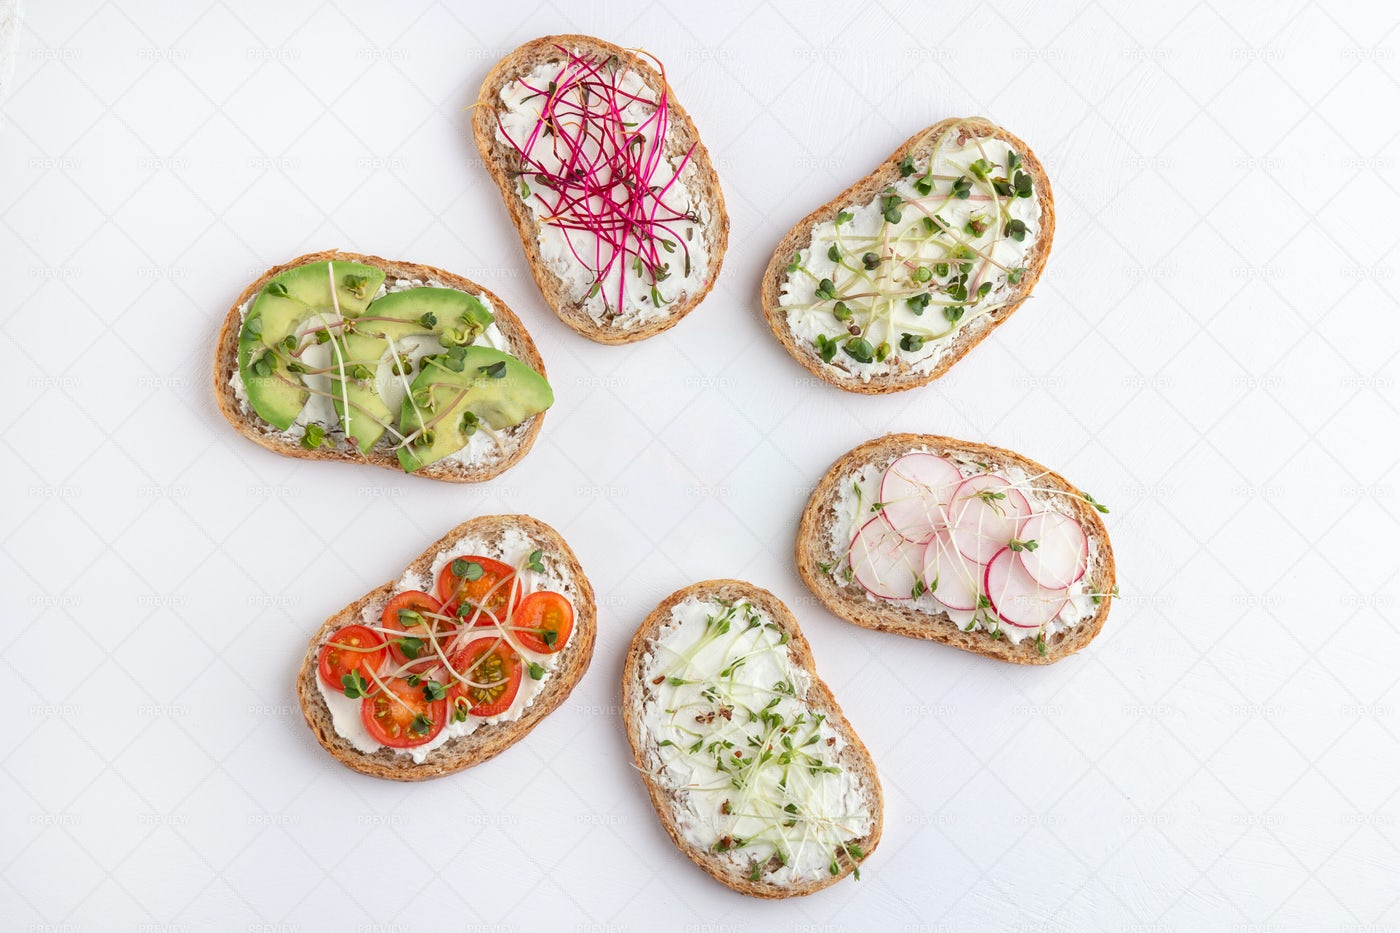 Healthy Bread Toppings: Stock Photos